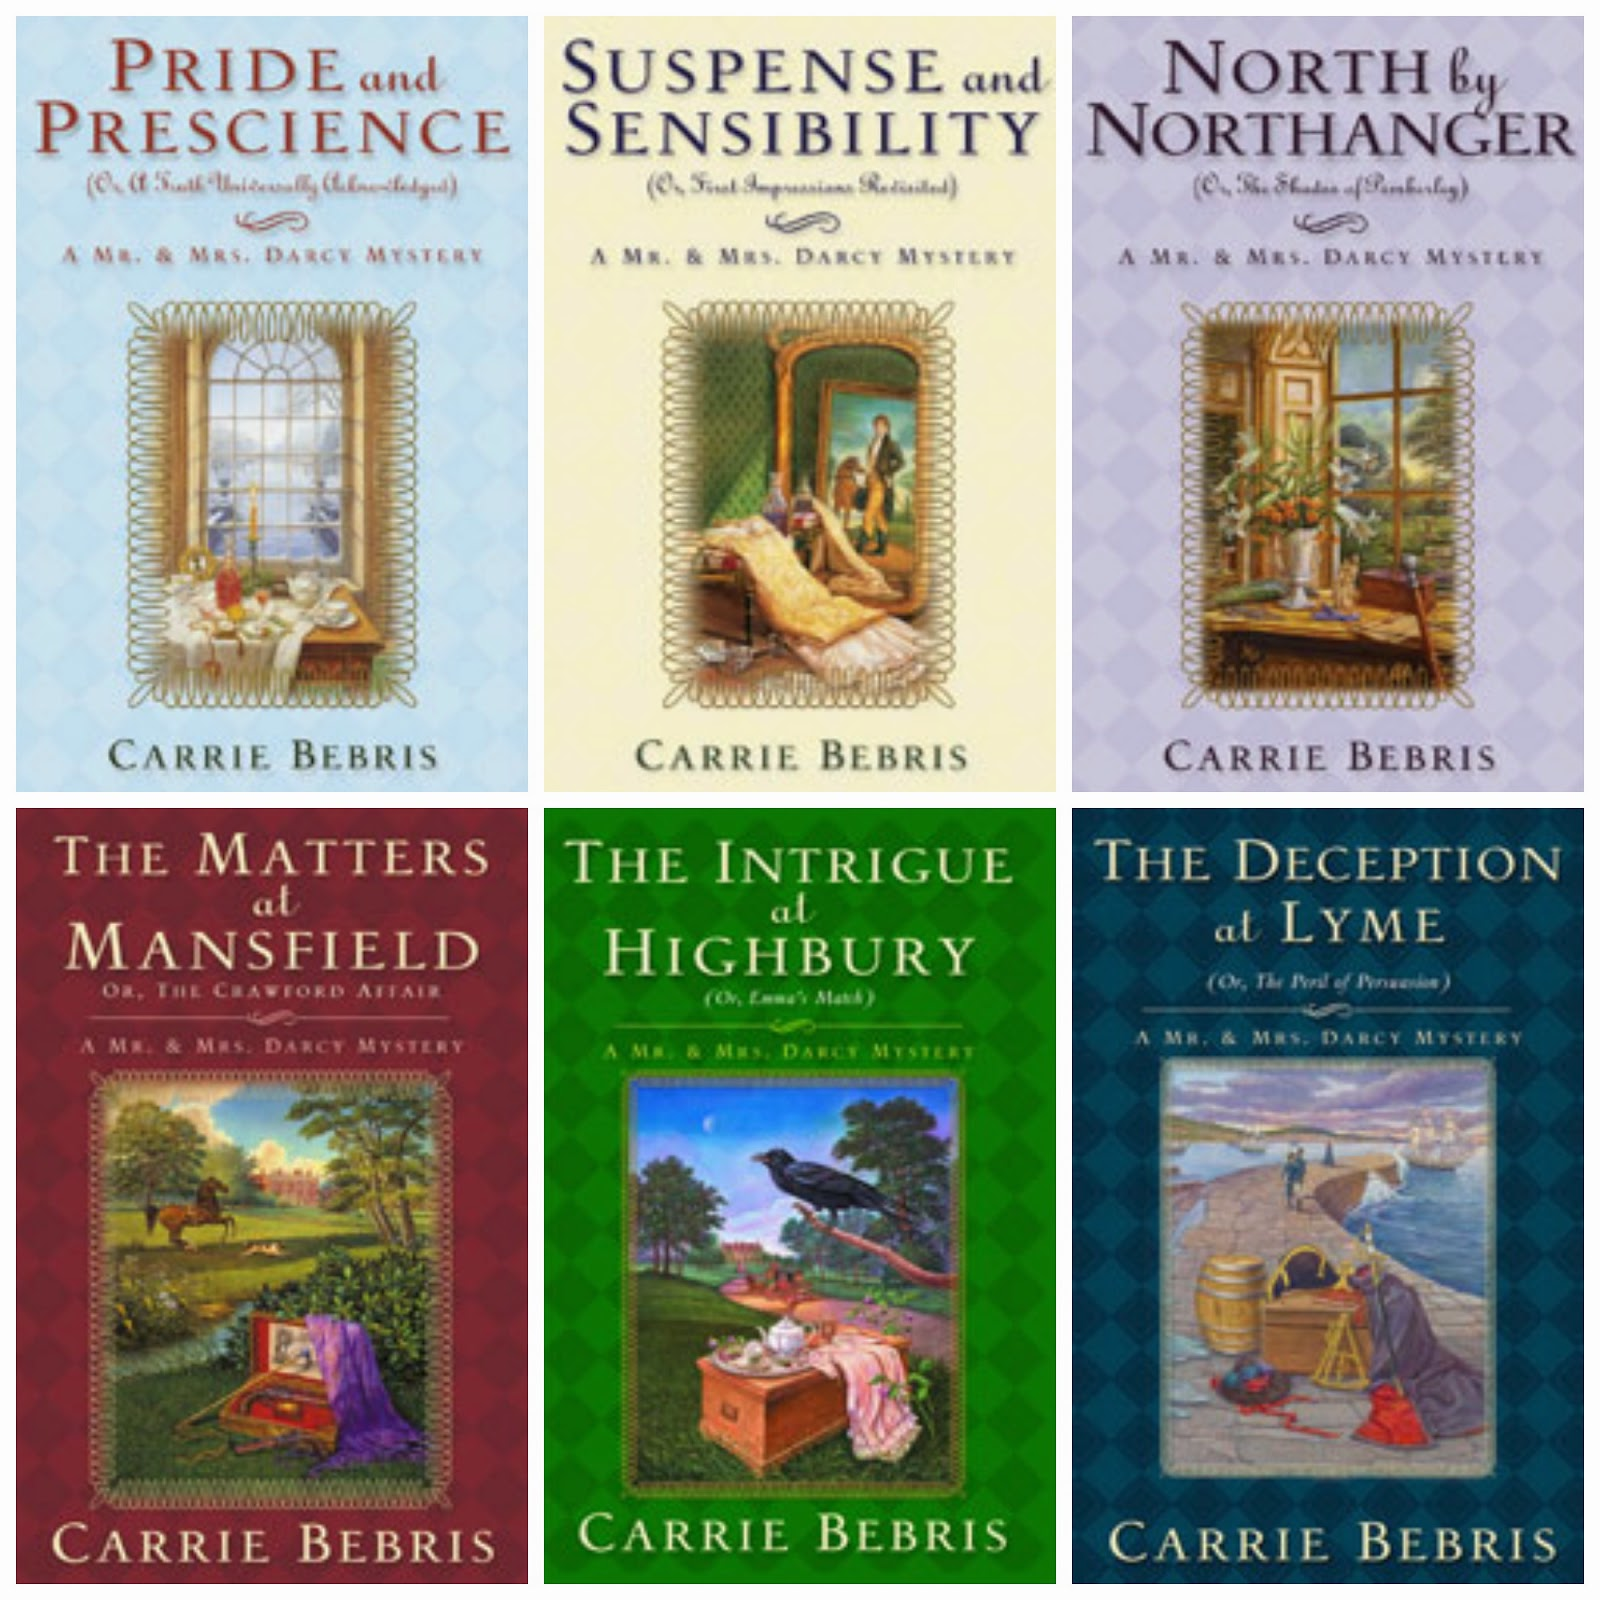 Book Covers: Mr & Mrs Darcy Mysteries by Carrie Bebris